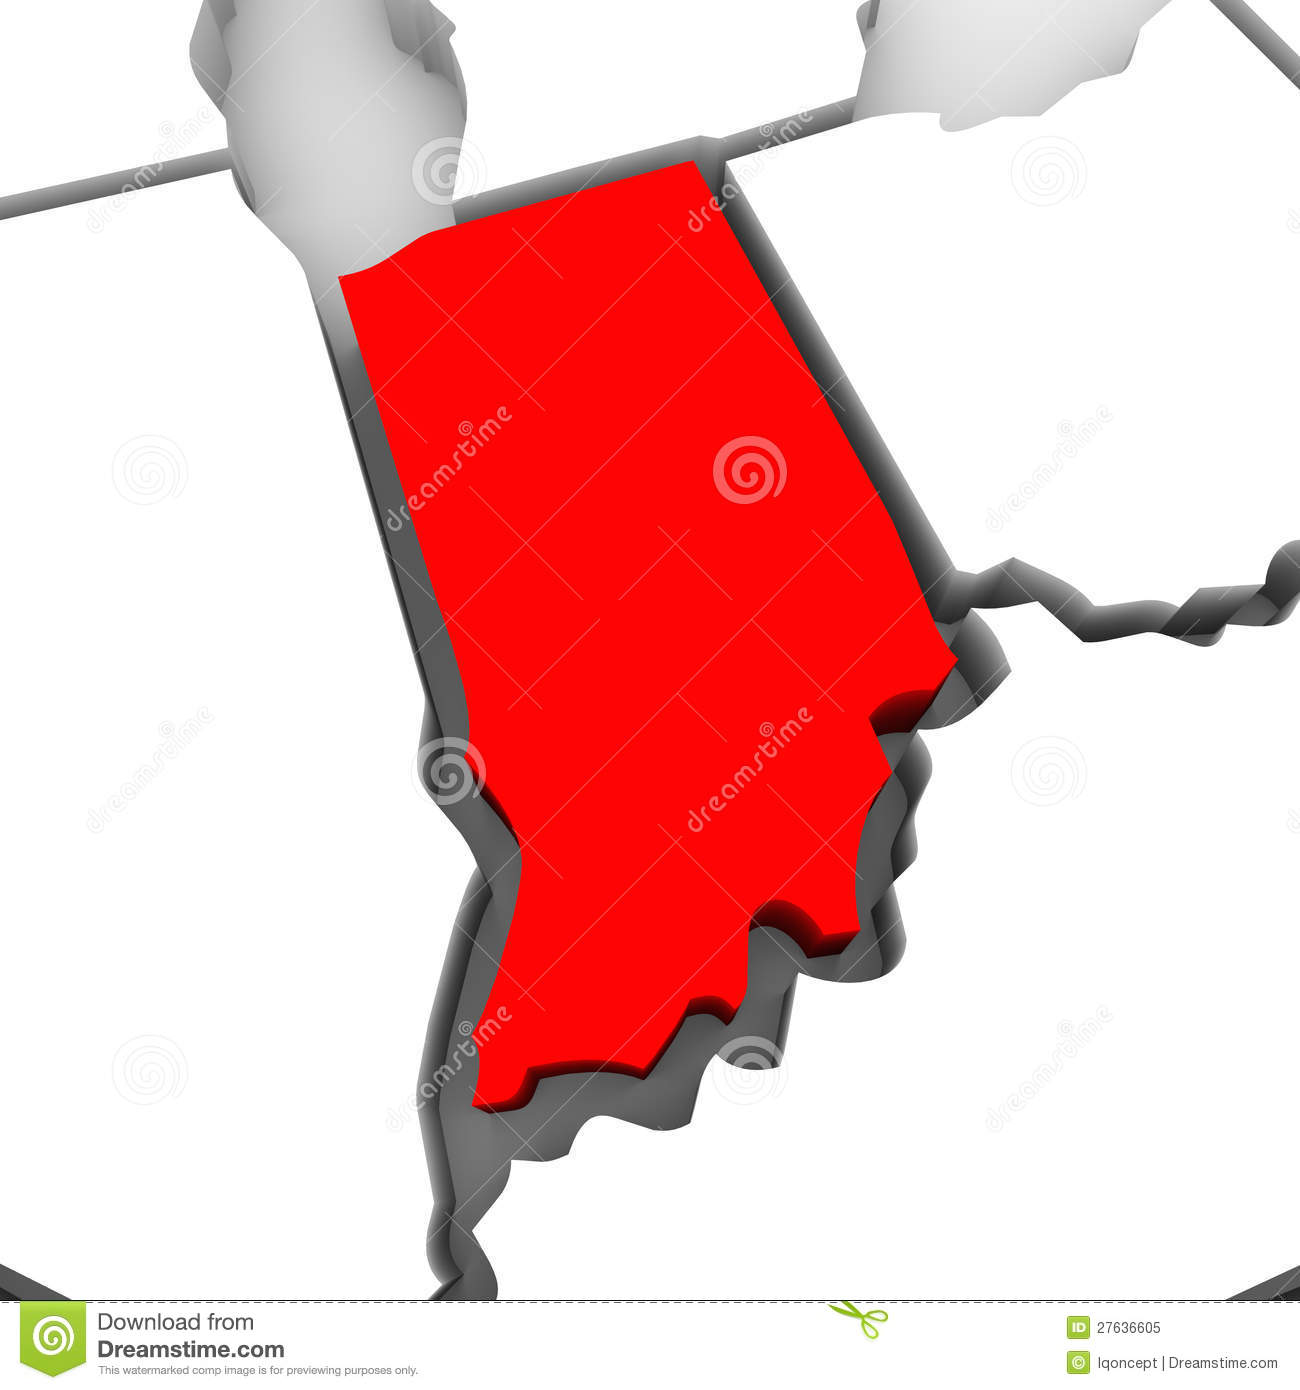 Indiana Red Abstract 3D State Map United States America Stock ...